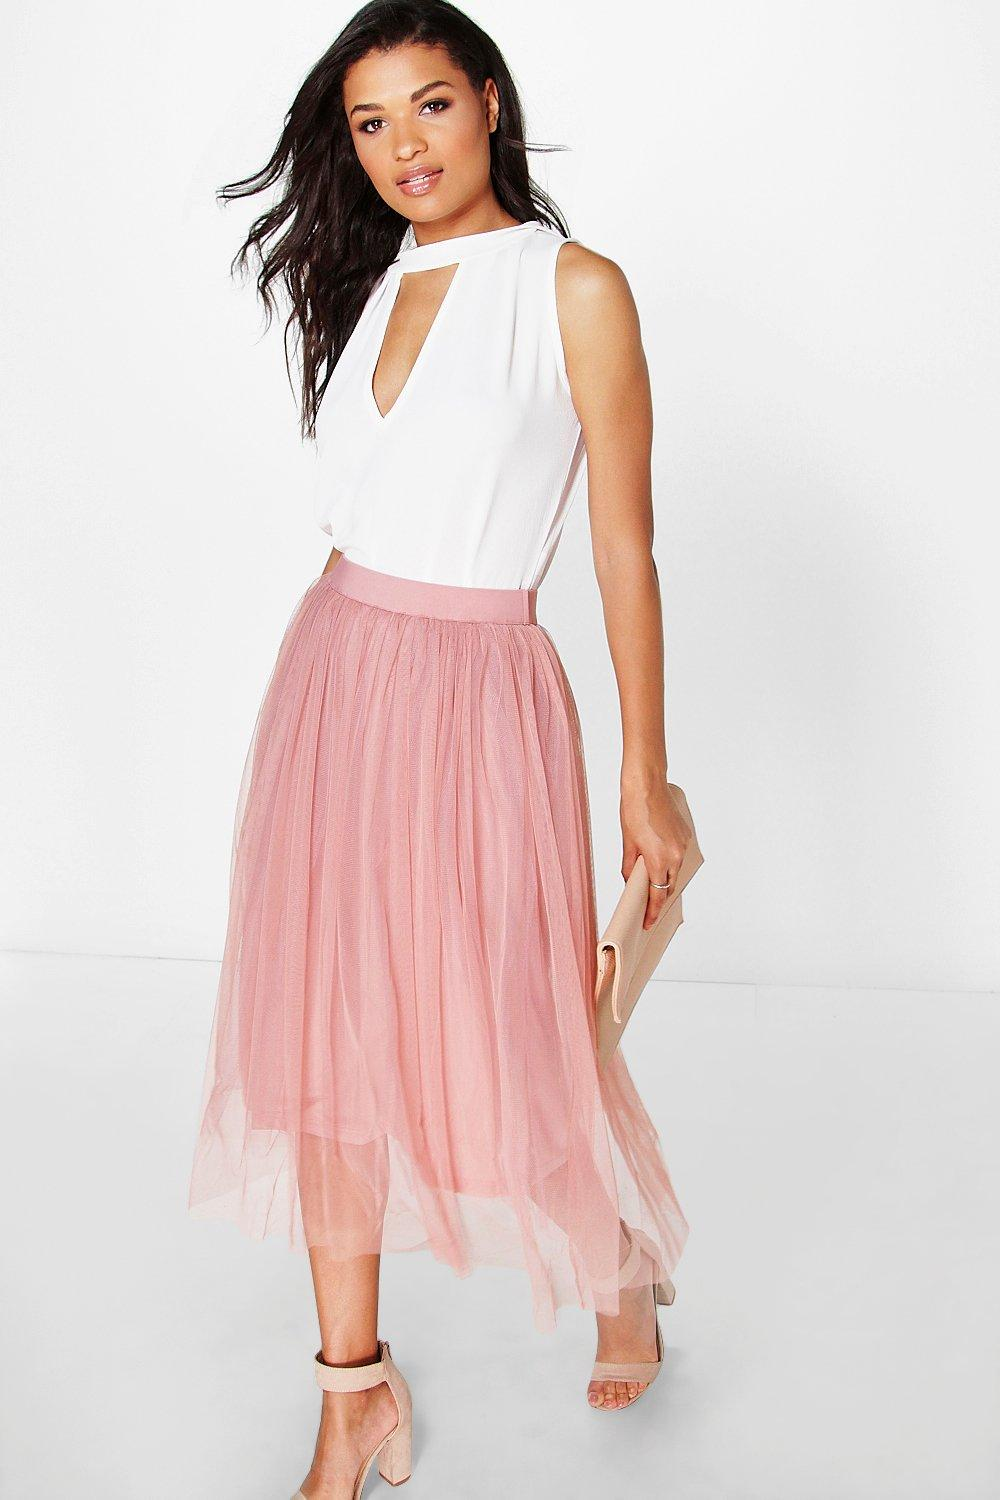 Boutique Aya Tulle Full Midi Skirt